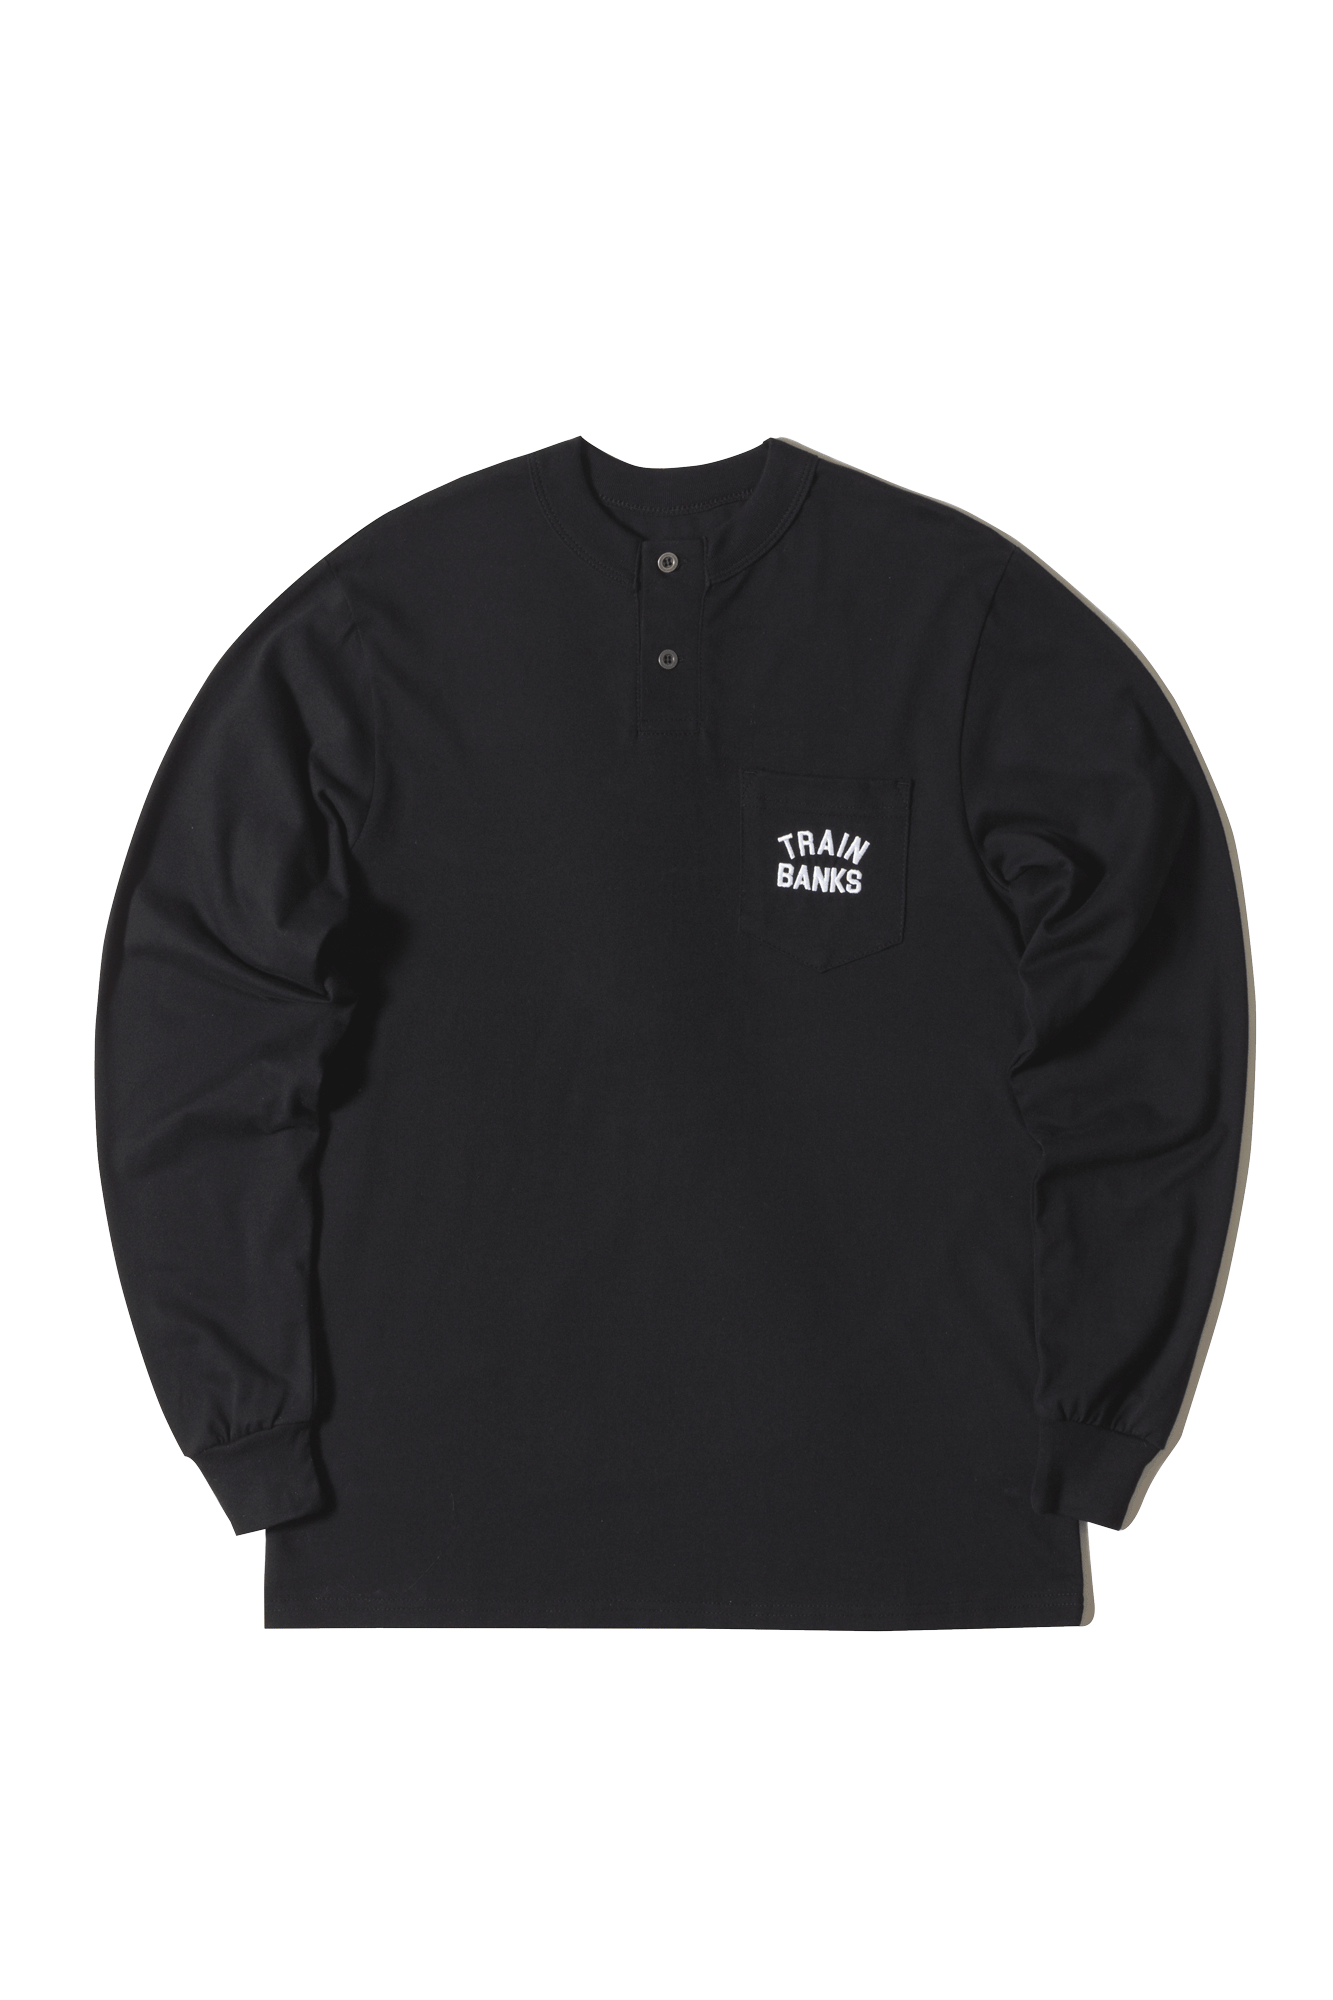 Polar Long sleeve T-Shirts Train Banks Henley Longsleeve Black TBHLBLK#000#BLK#XS - One Block Down